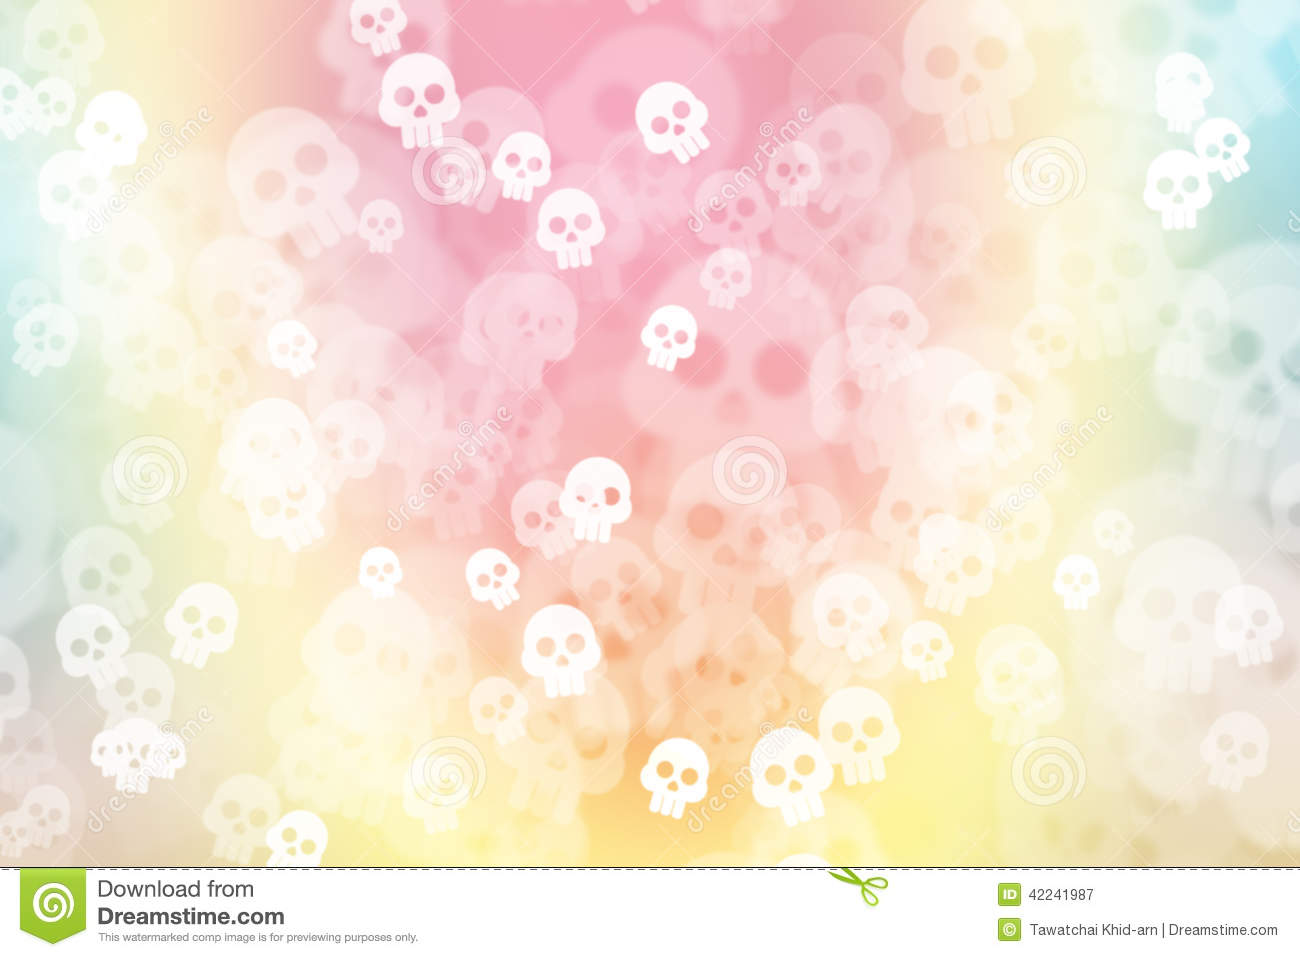 green blue and pink pastel colorful background with skull stock illustration image 42241987. Black Bedroom Furniture Sets. Home Design Ideas